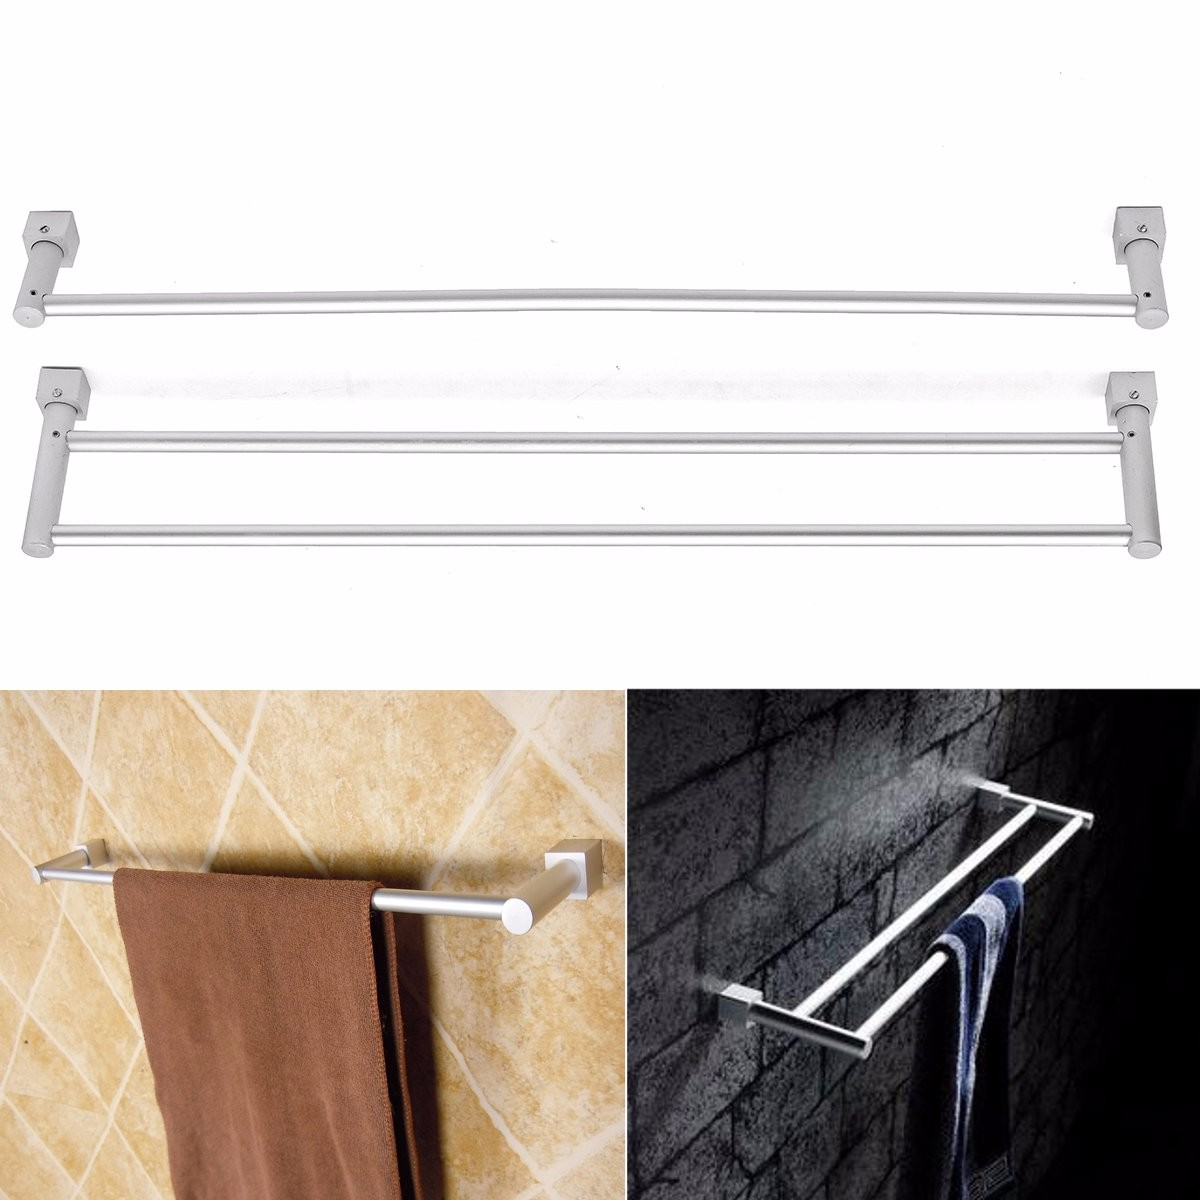 56cm Aluminum Single Double Layer Towel Rail Rack Holder Shelf Kitchen Bathroom Towel Hanger Wall Mounted Towel Holder